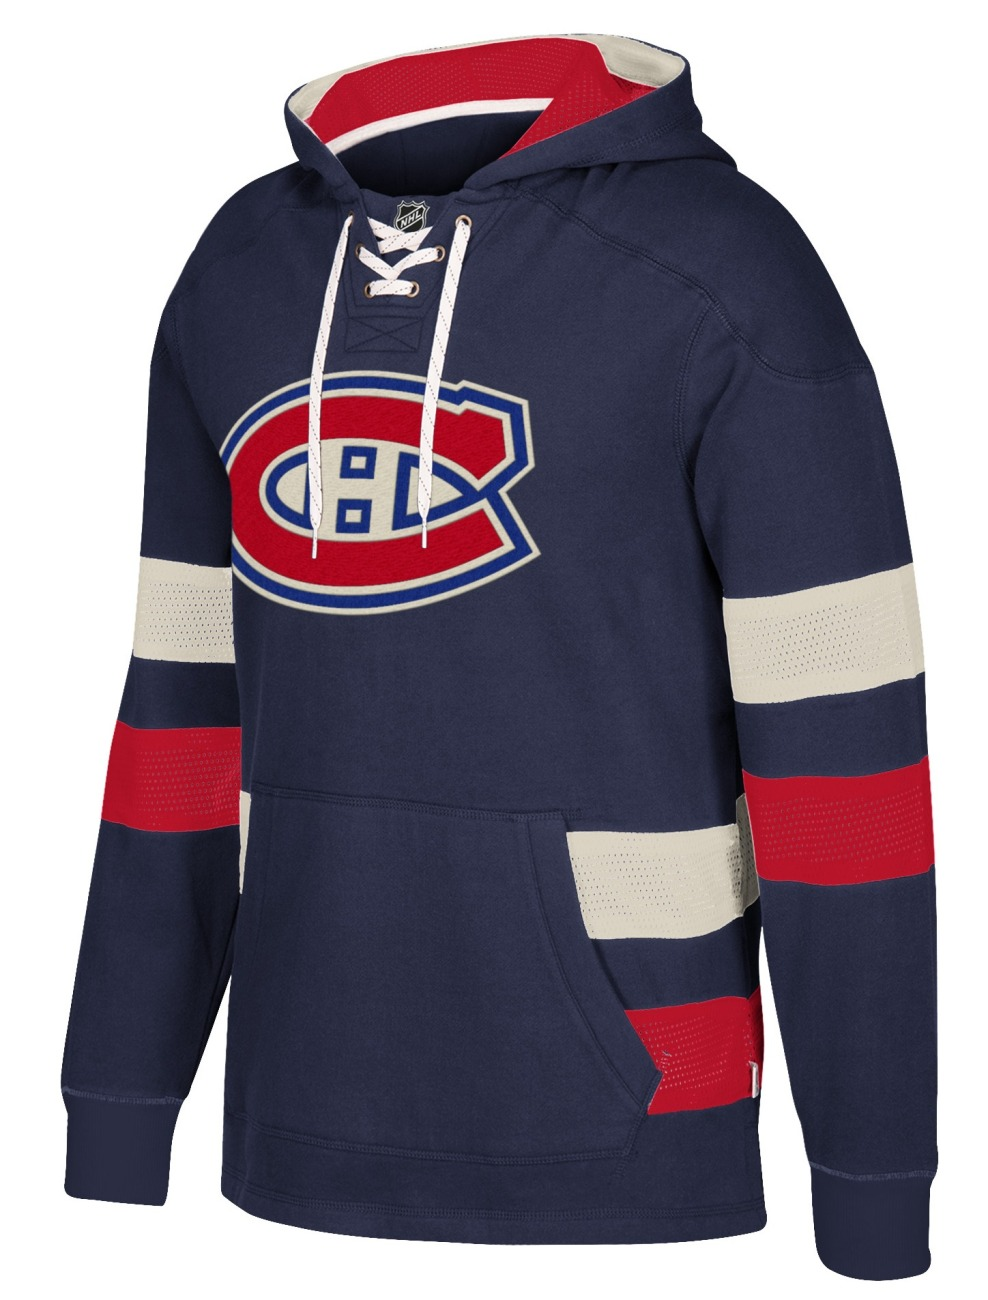 "Montreal Canadiens CCM NHL ""Penalty Kill"" Men's Vintage Jersey Sweatshirt"